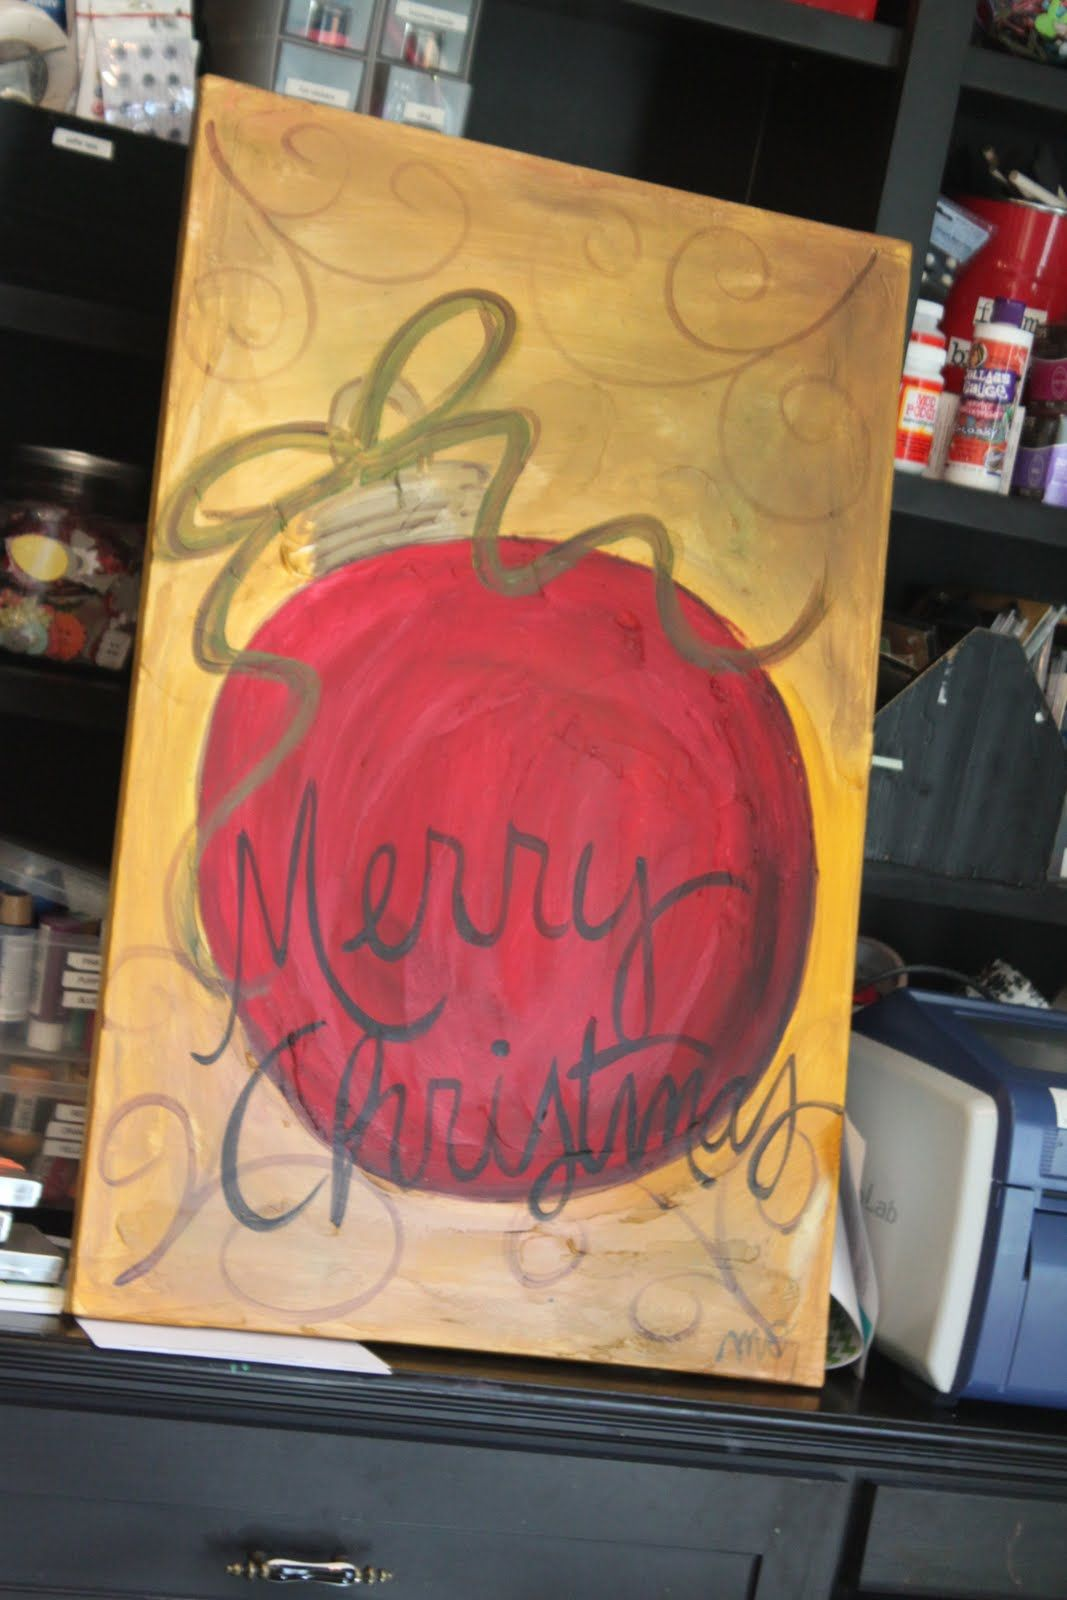 Red Customizable Ornament Rose N Vine Paint Party Canvas Painting Idea No Copyright Infringement Intended